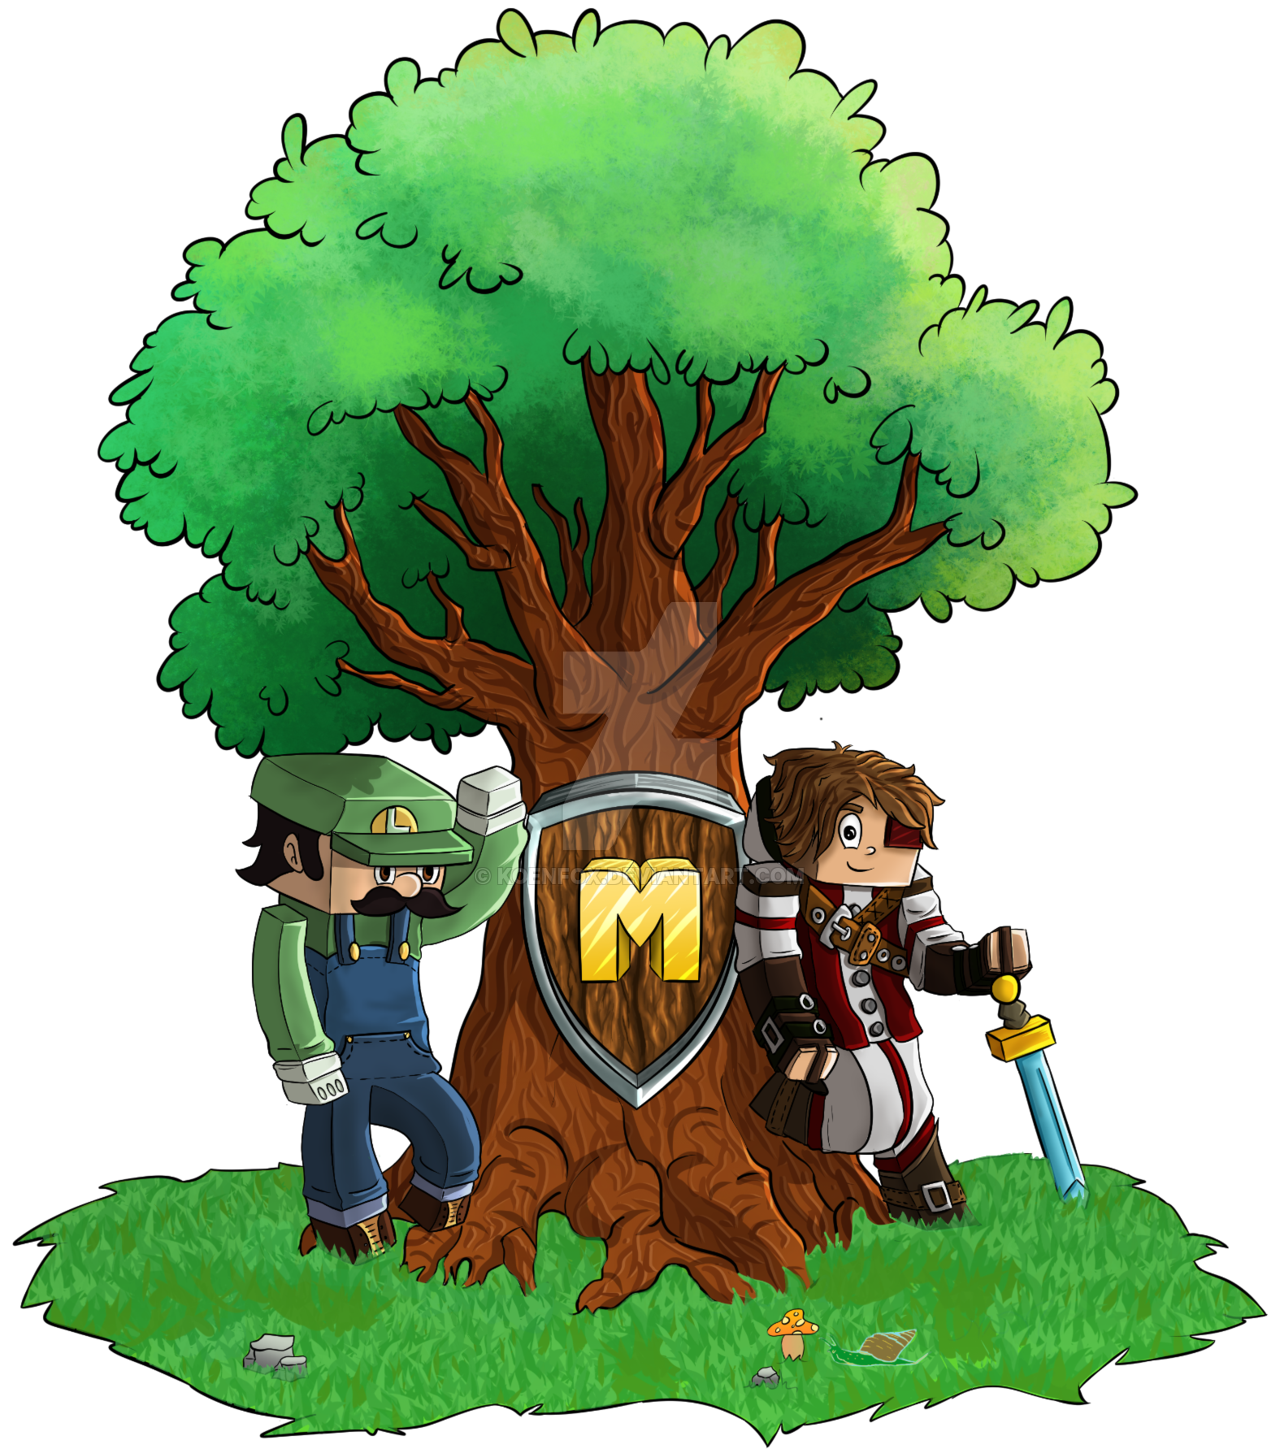 Palace clipart minecraft. Giant tree wip by